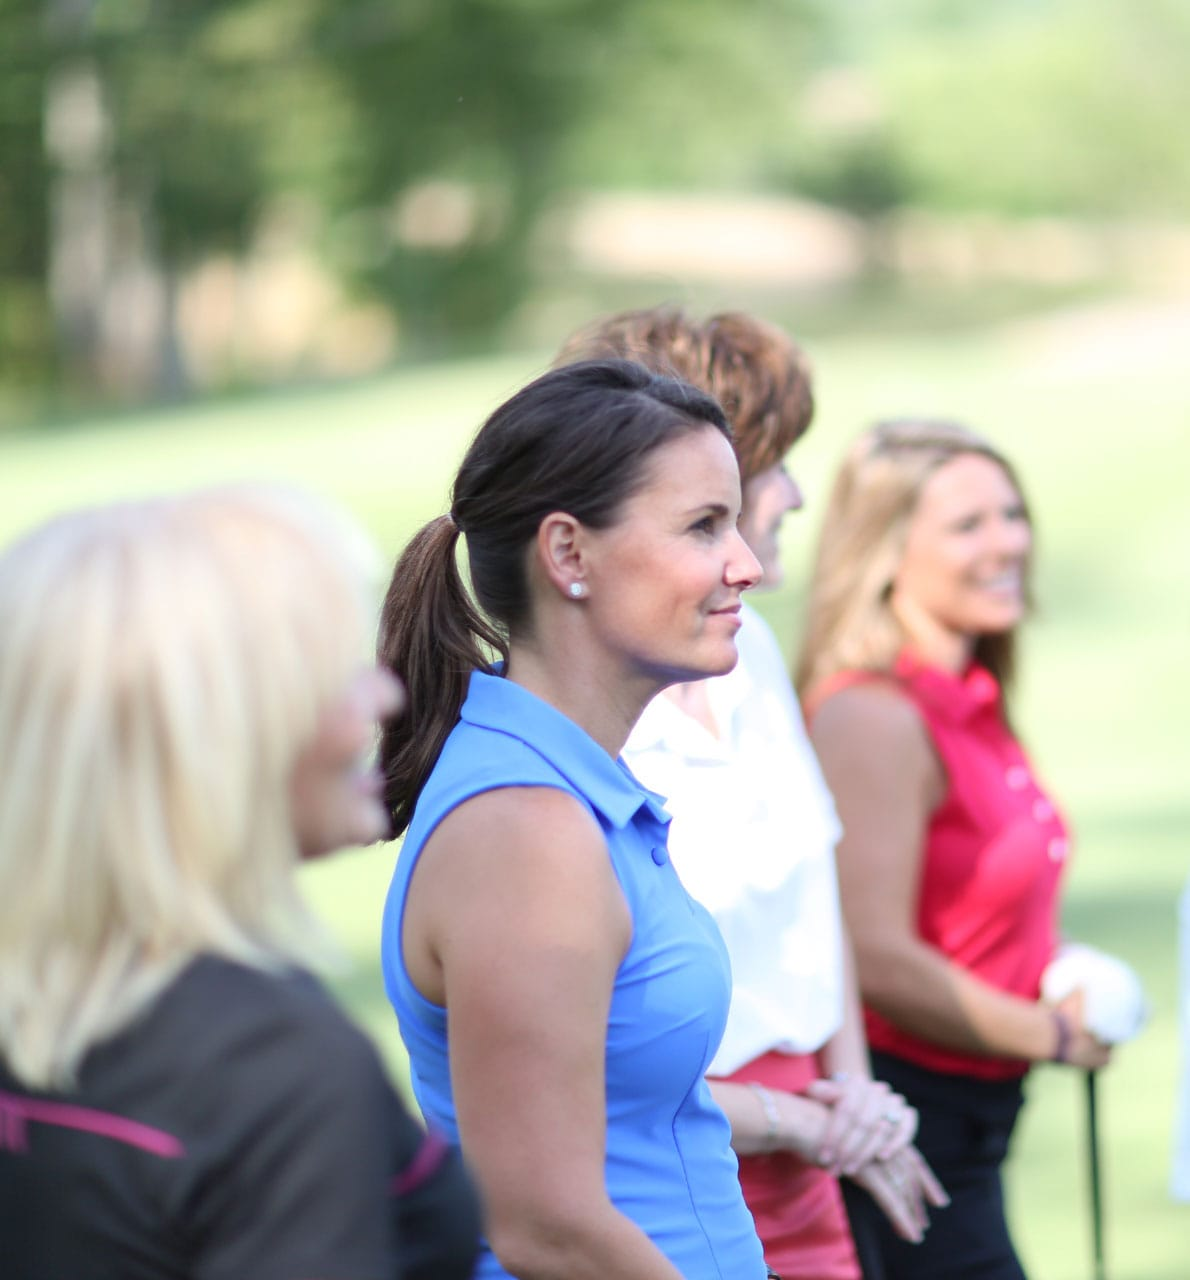 Ladies taking a golfing lesson